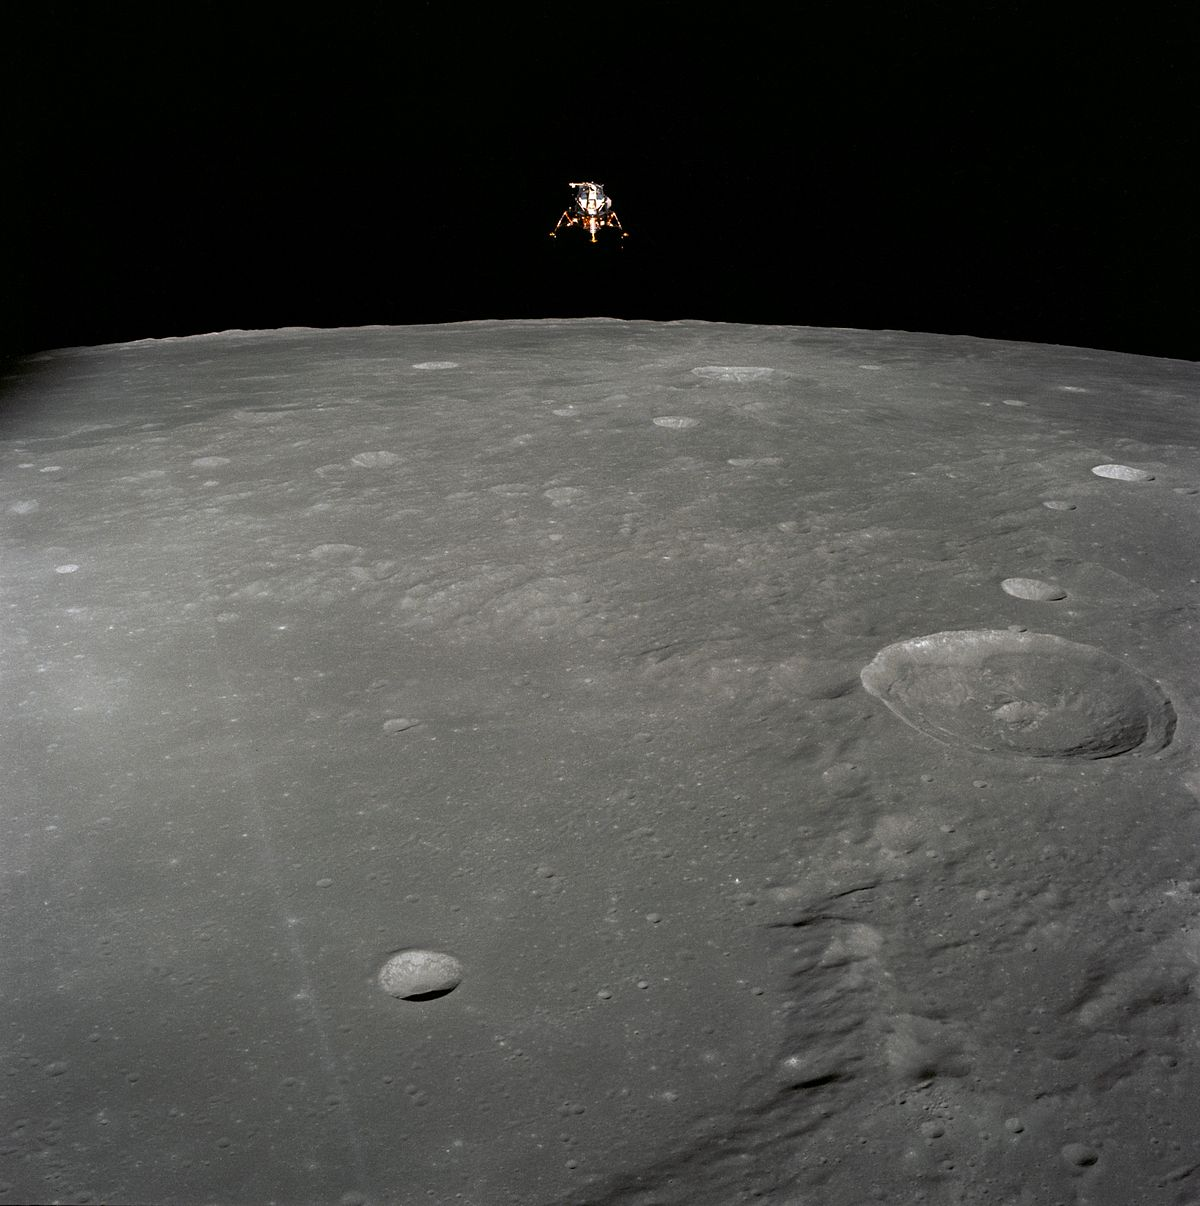 Exploration of the Moon - Wikipedia